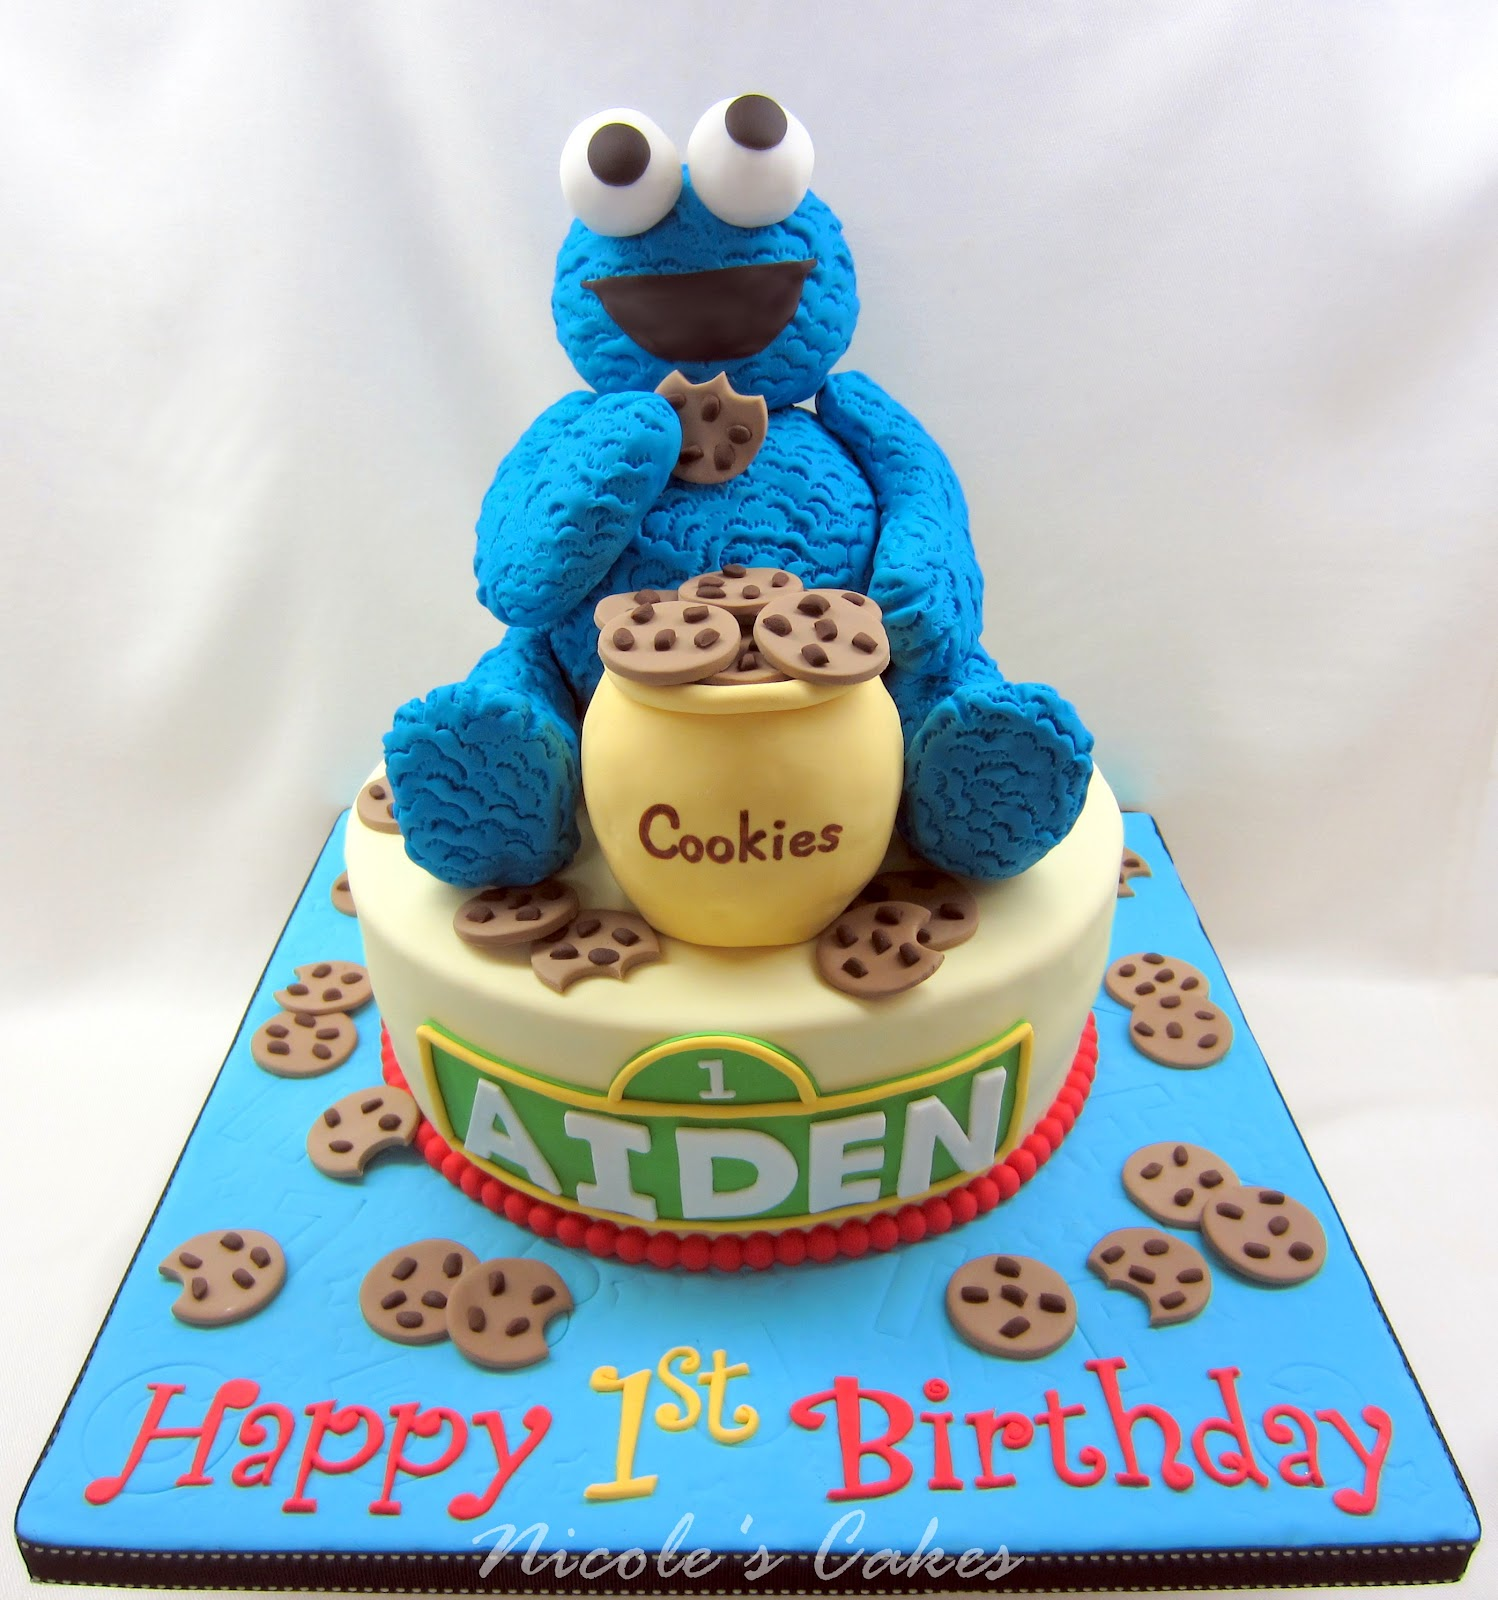 Miraculous Cookie Monster Cakes Decoration Ideas Little Birthday Cakes Personalised Birthday Cards Petedlily Jamesorg